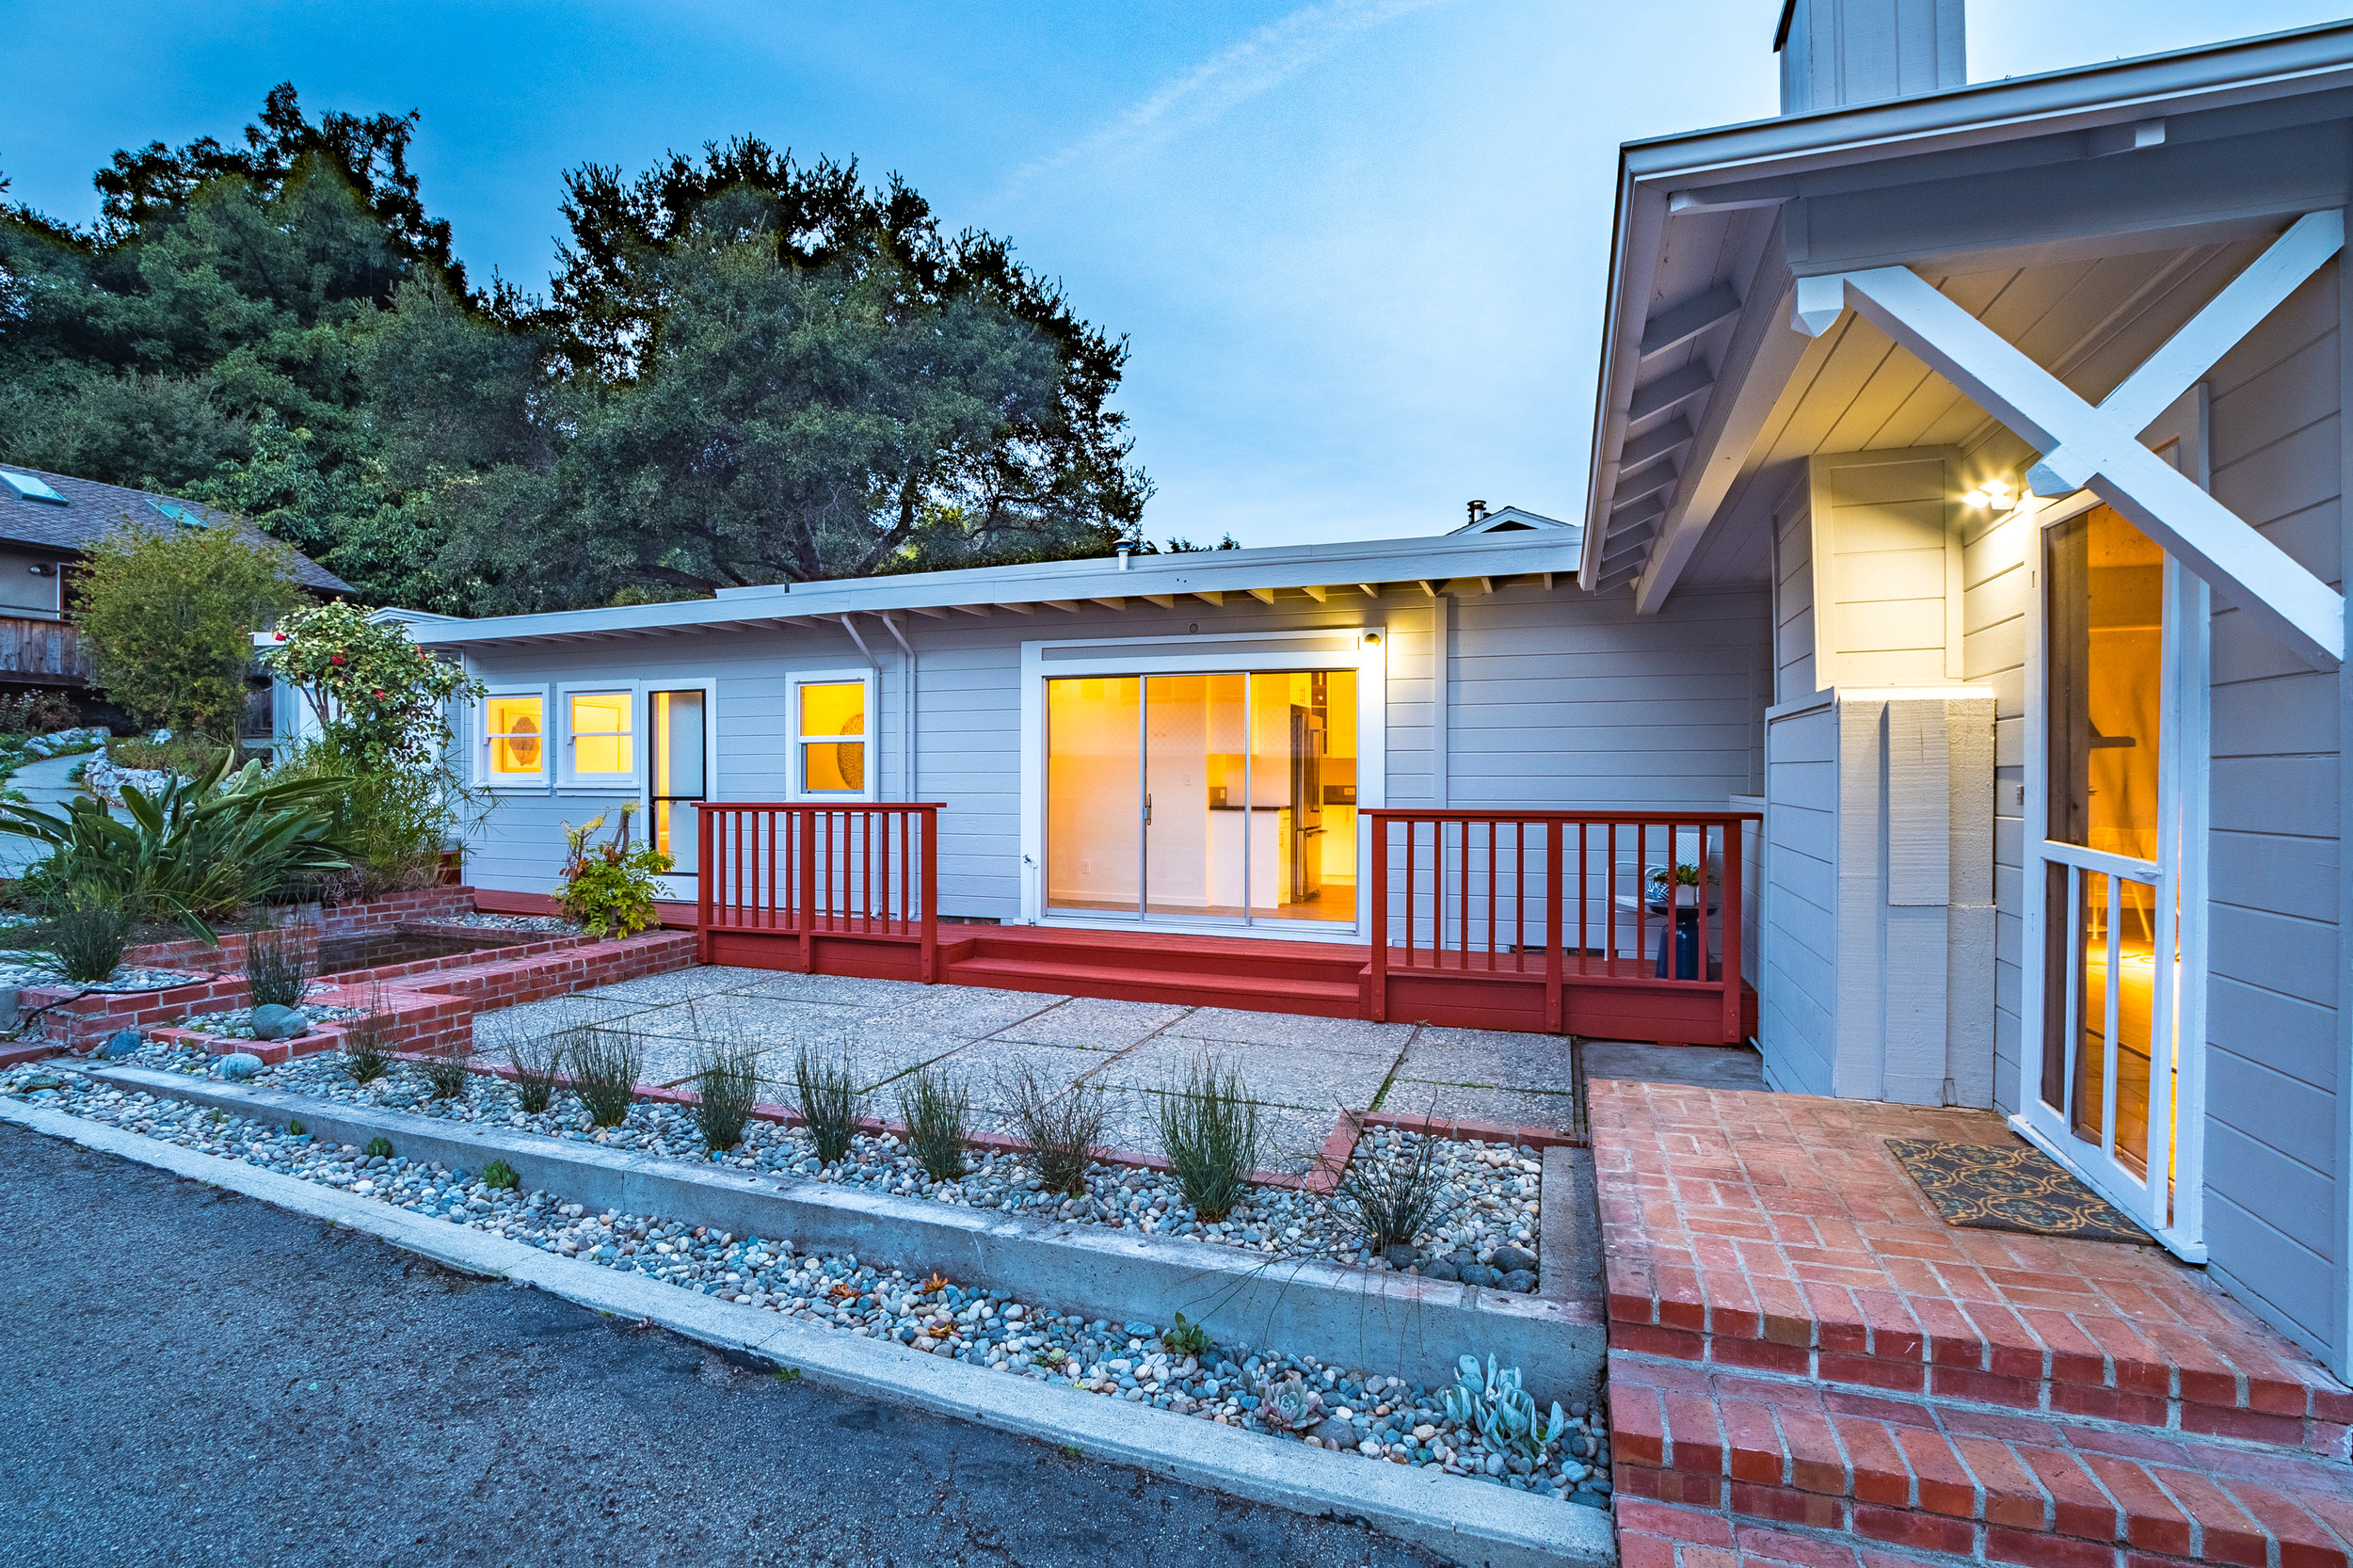 SOLD 1044 Escalona Dr, Santa Cruz • $1,550,000  3 Bedroom, 2 Bathroom • 1,736 Sq. Ft. • ADU